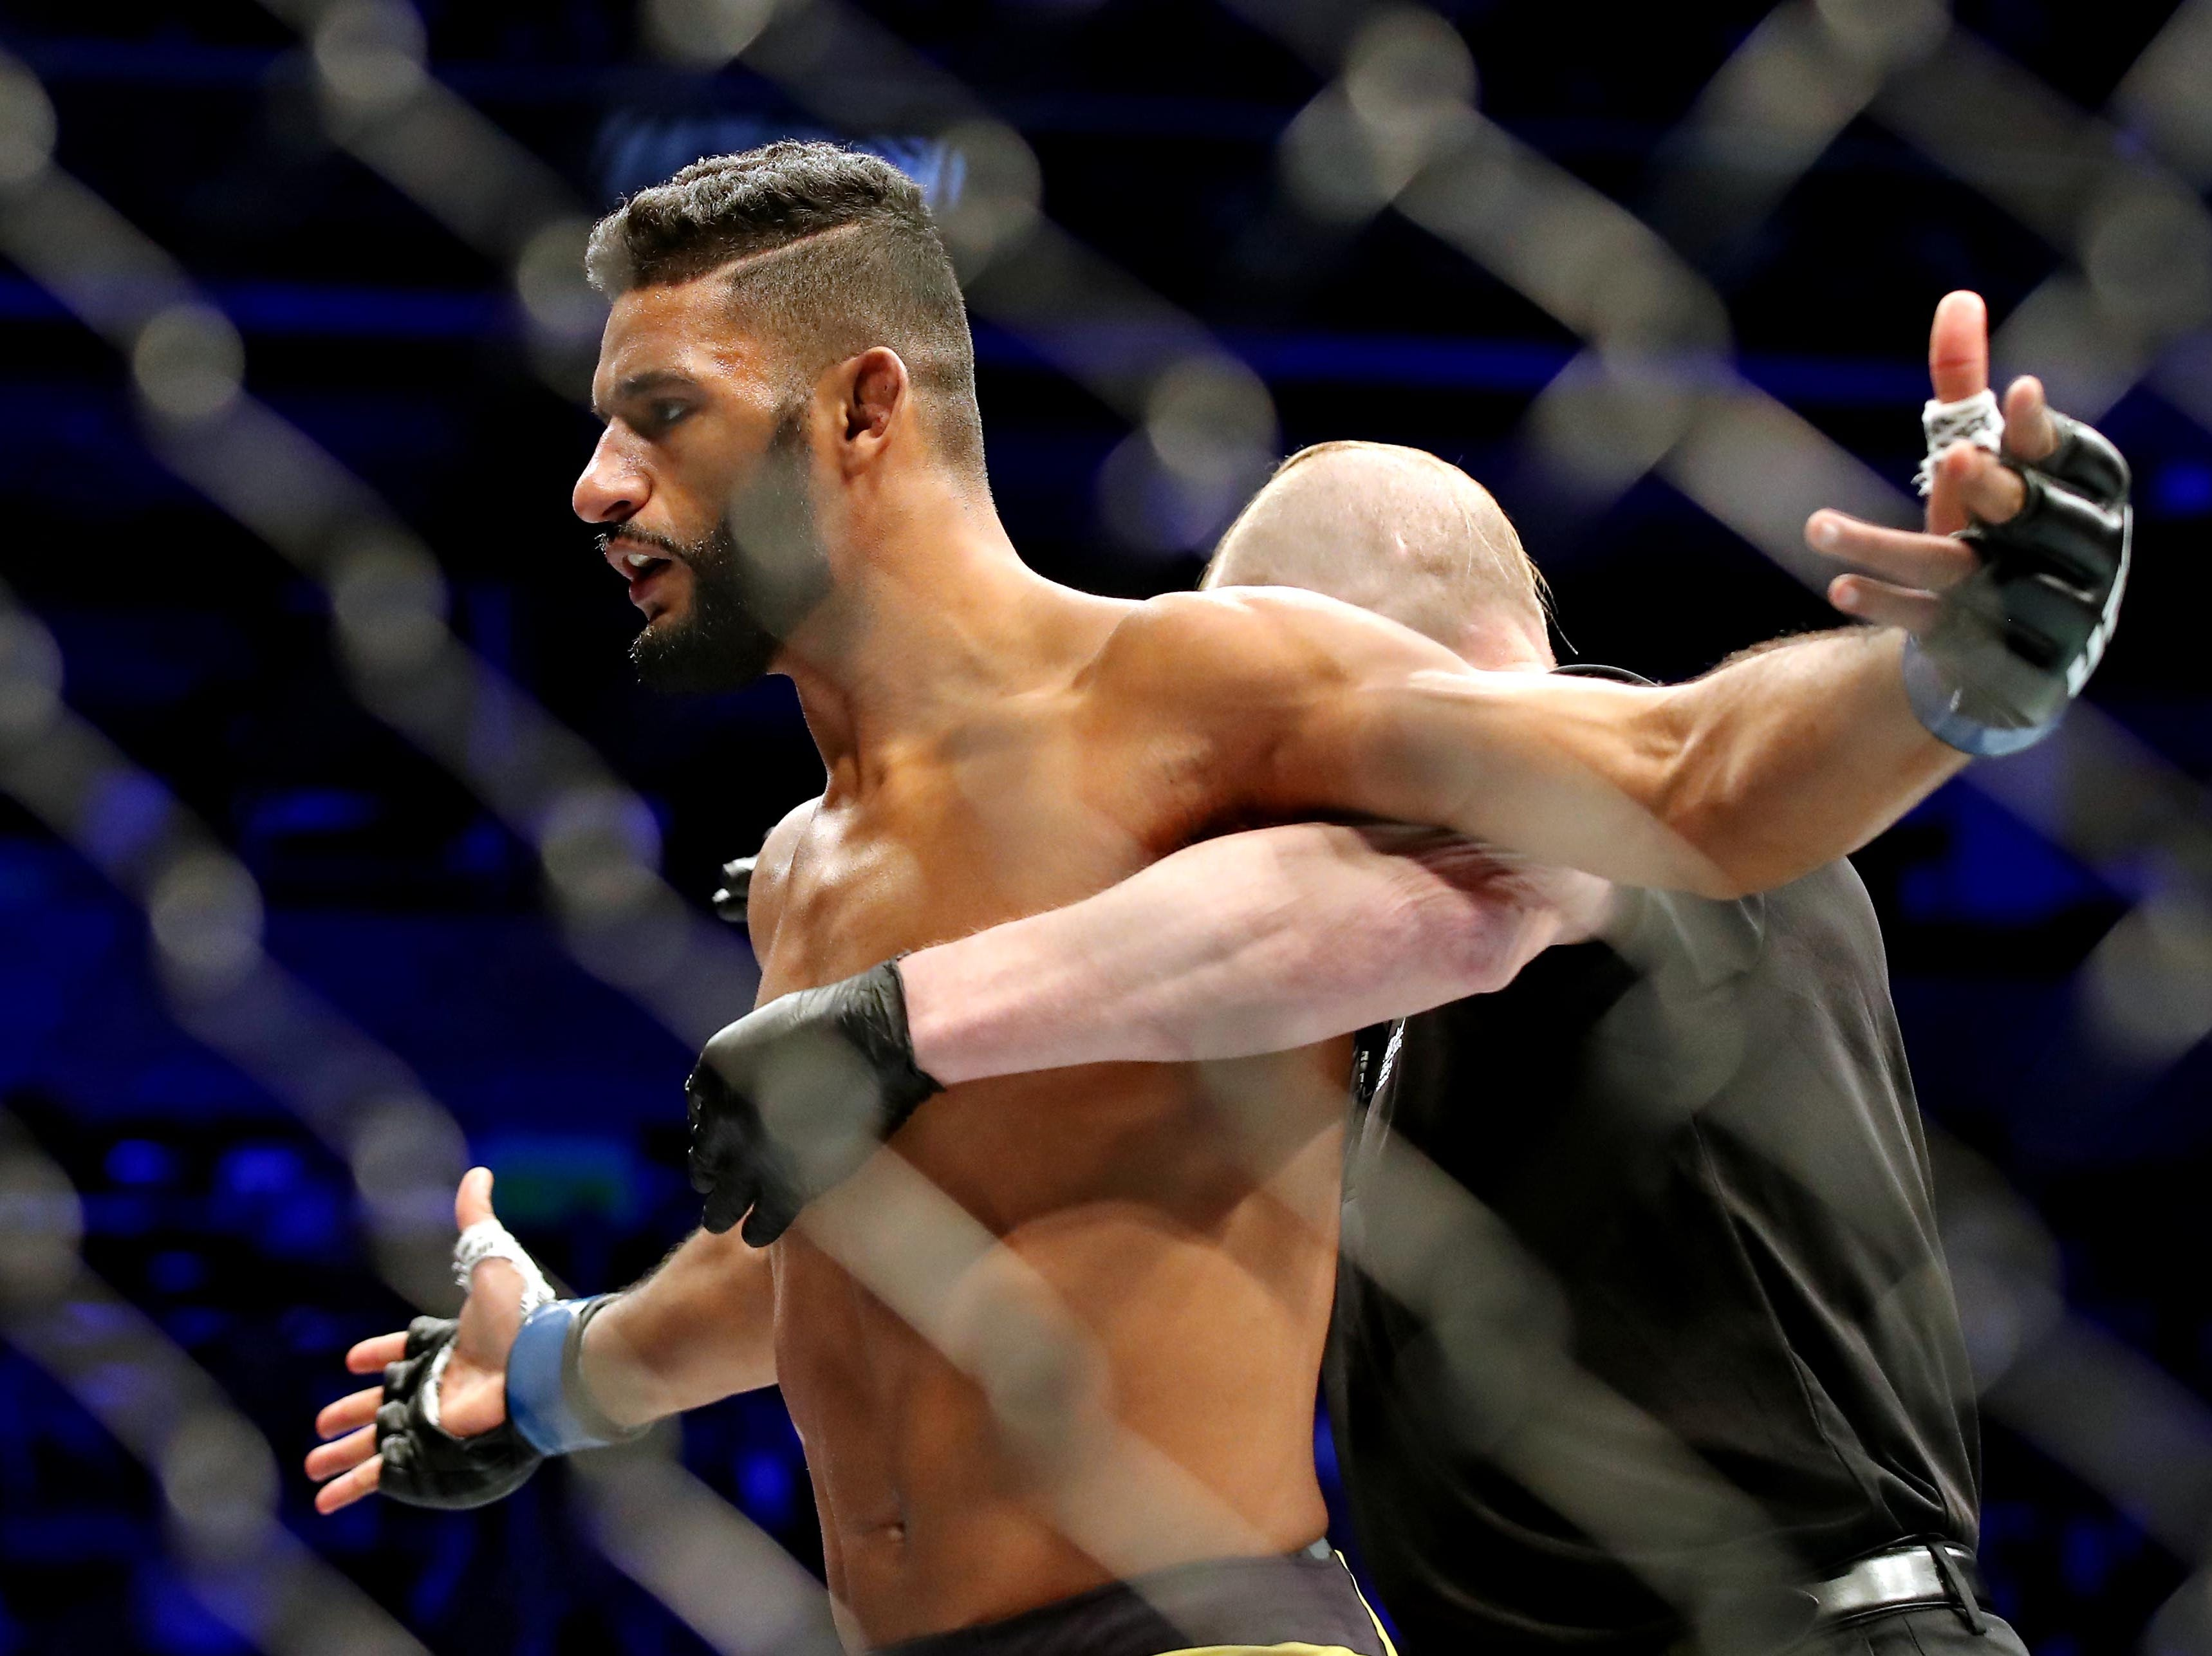 Dhiego Lima (blue gloves) celebrates beating Chad Laprise (red gloves) during UFC 231 at Scotiabank Arena.